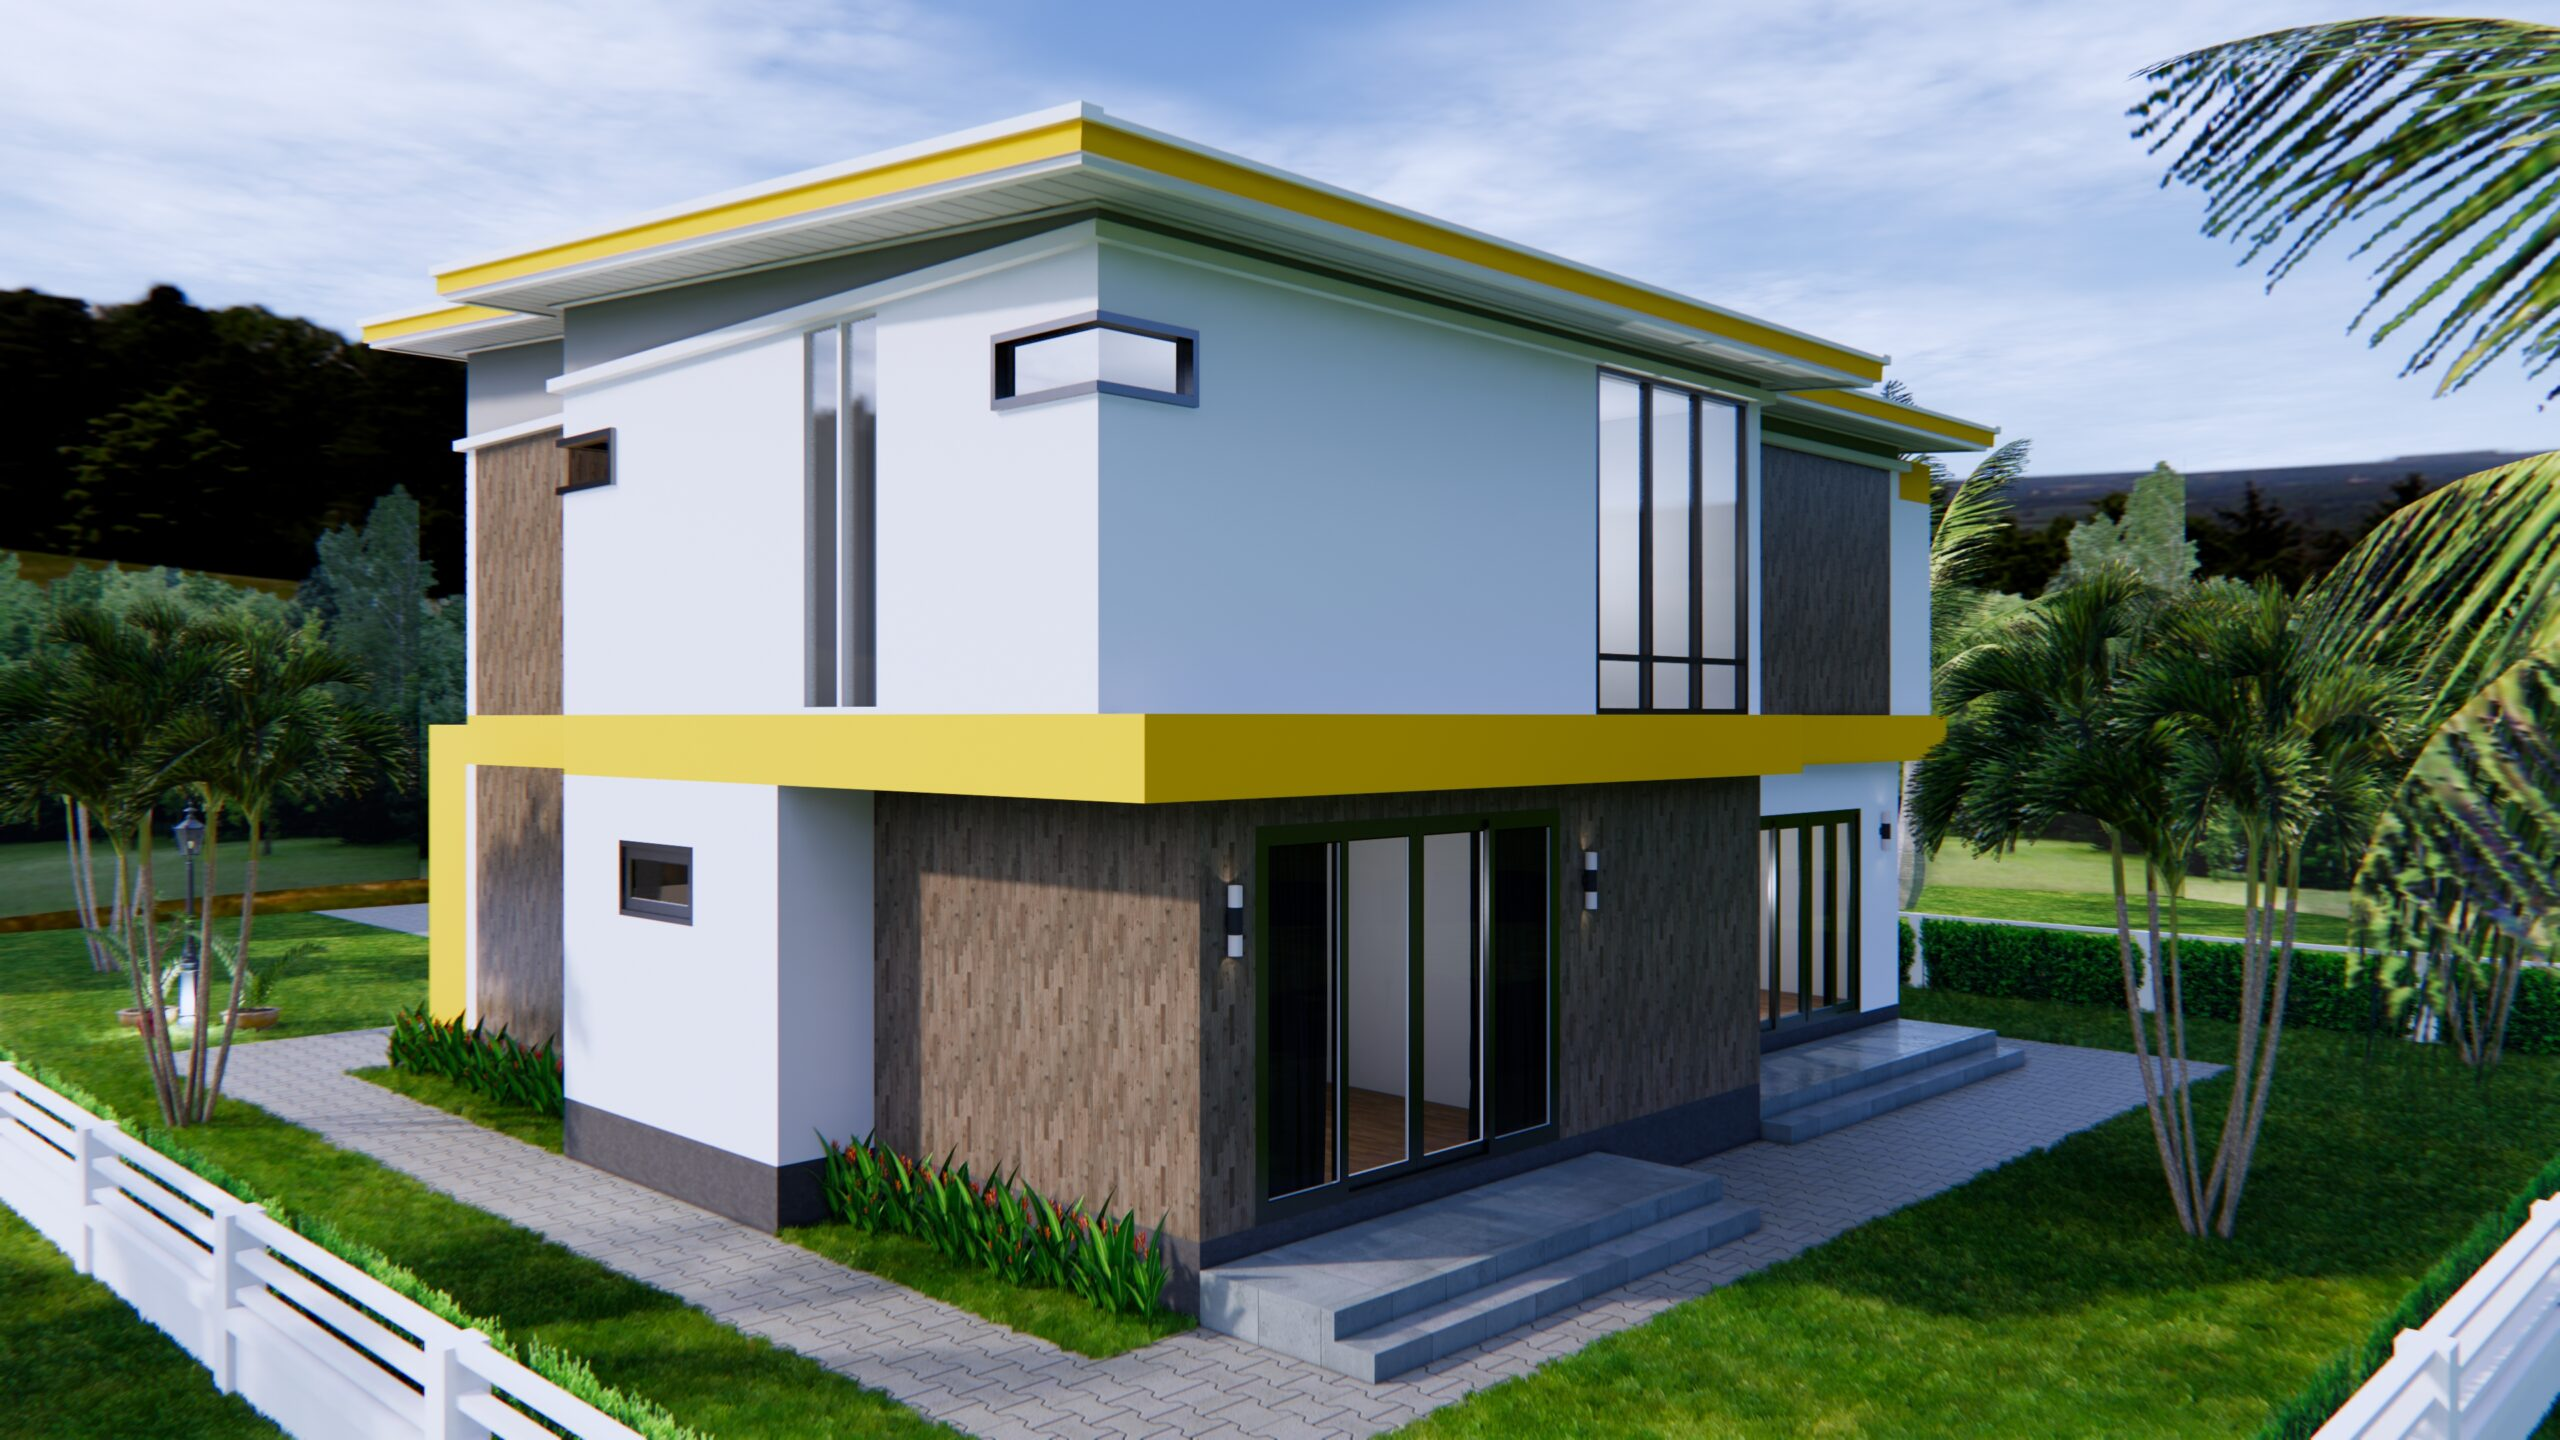 House Design 12.4x11 Meter 41x35 Feet 4 Beds 5